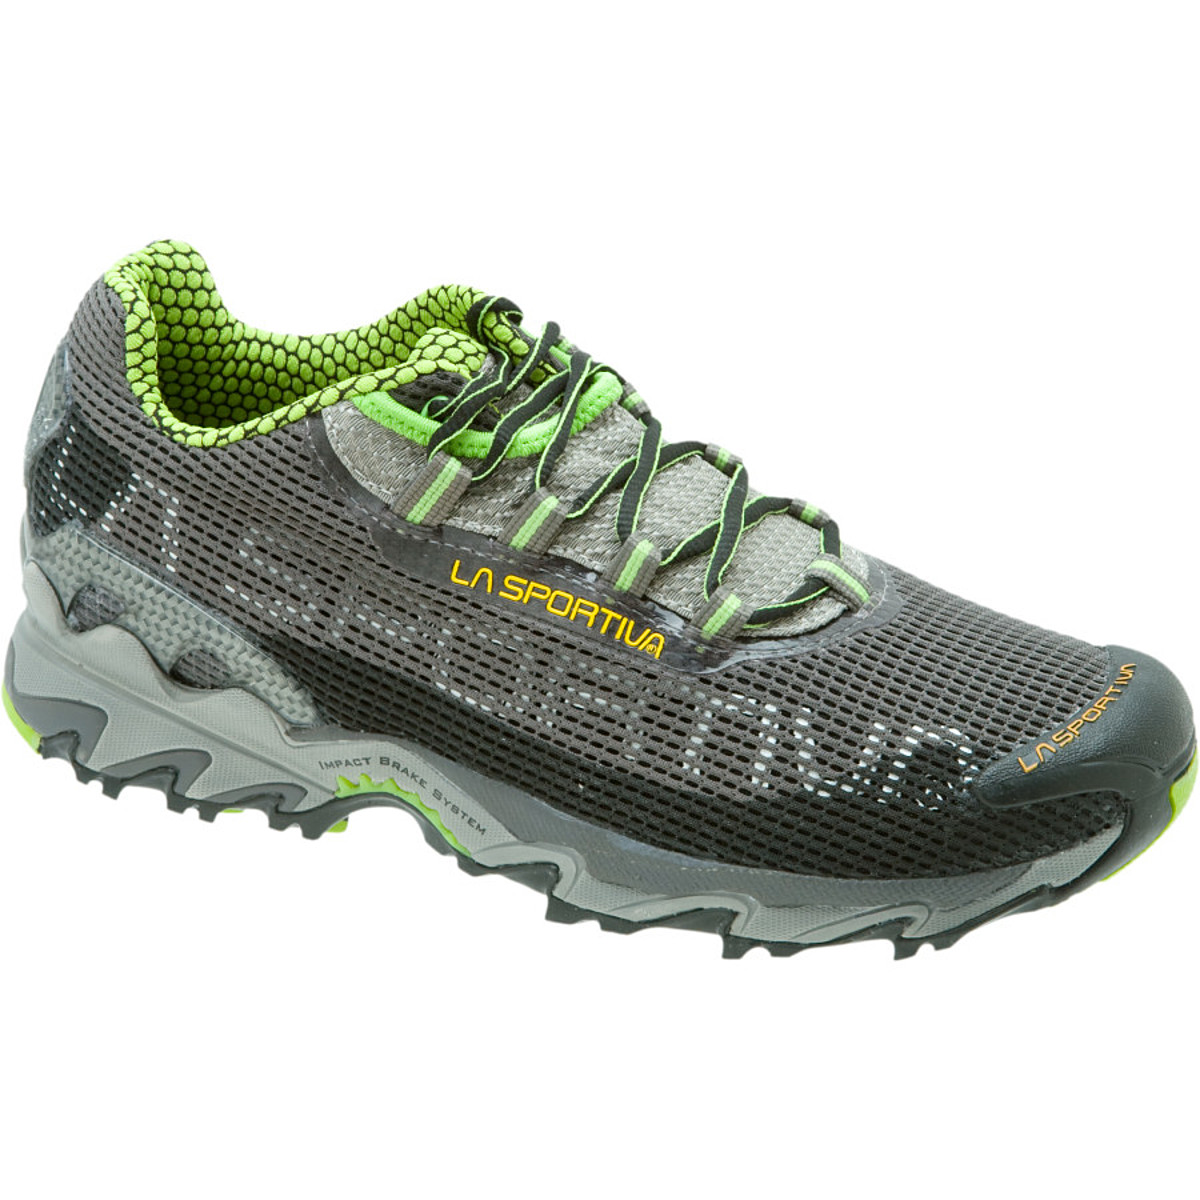 La Sportiva Wildcat Trail Running Shoes Women S